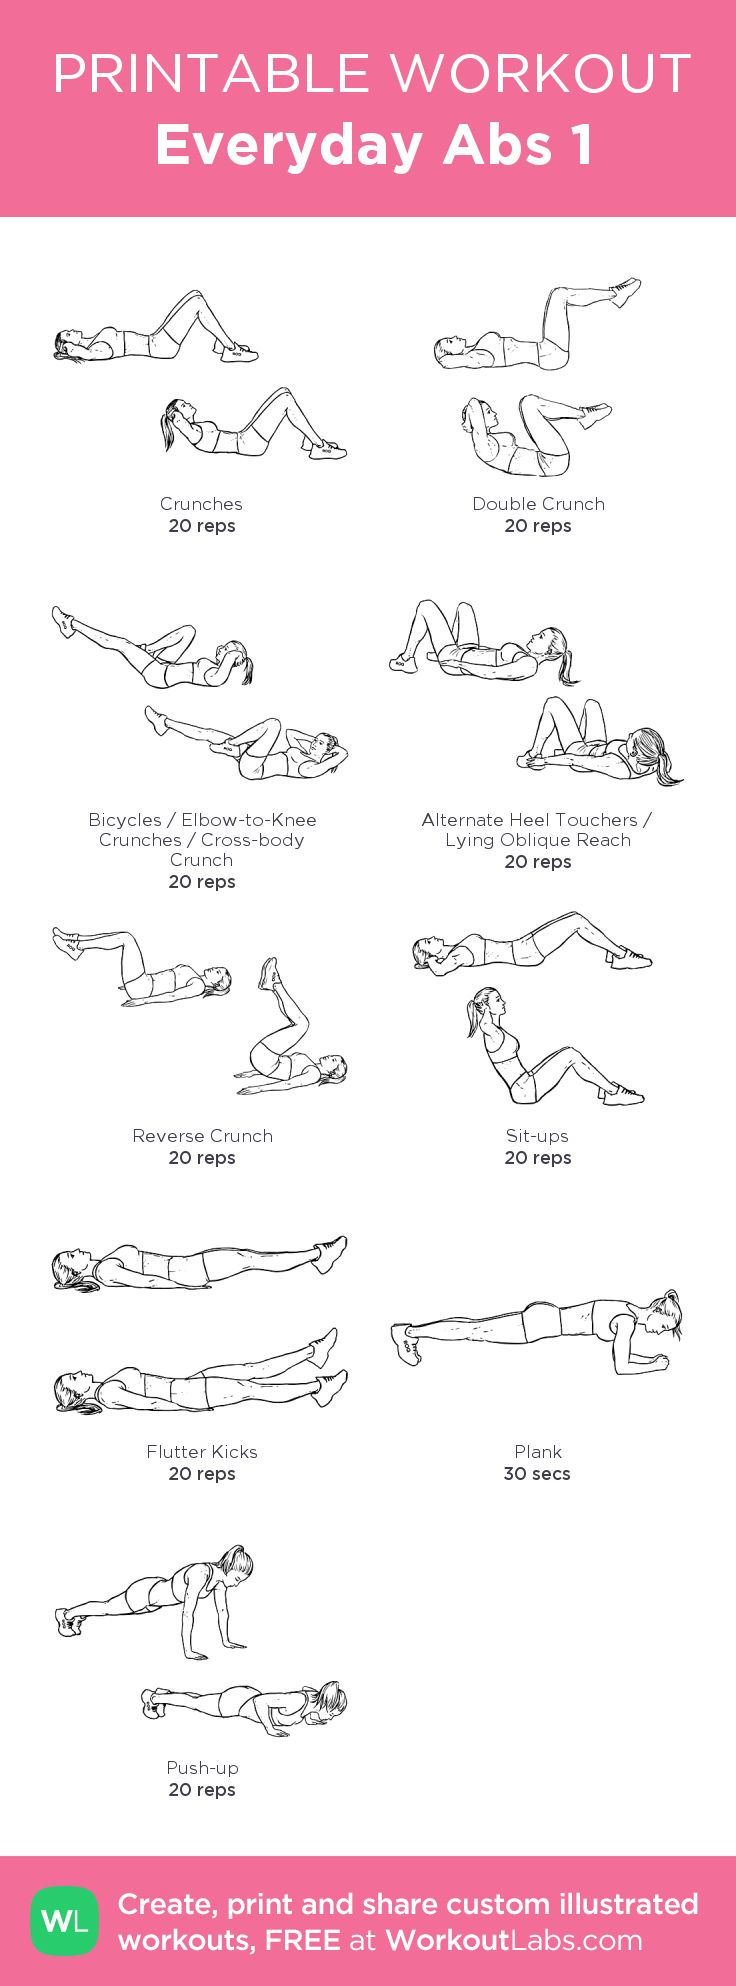 Everyday Abs 1:I've found it easier to do a little at a time, everyday.